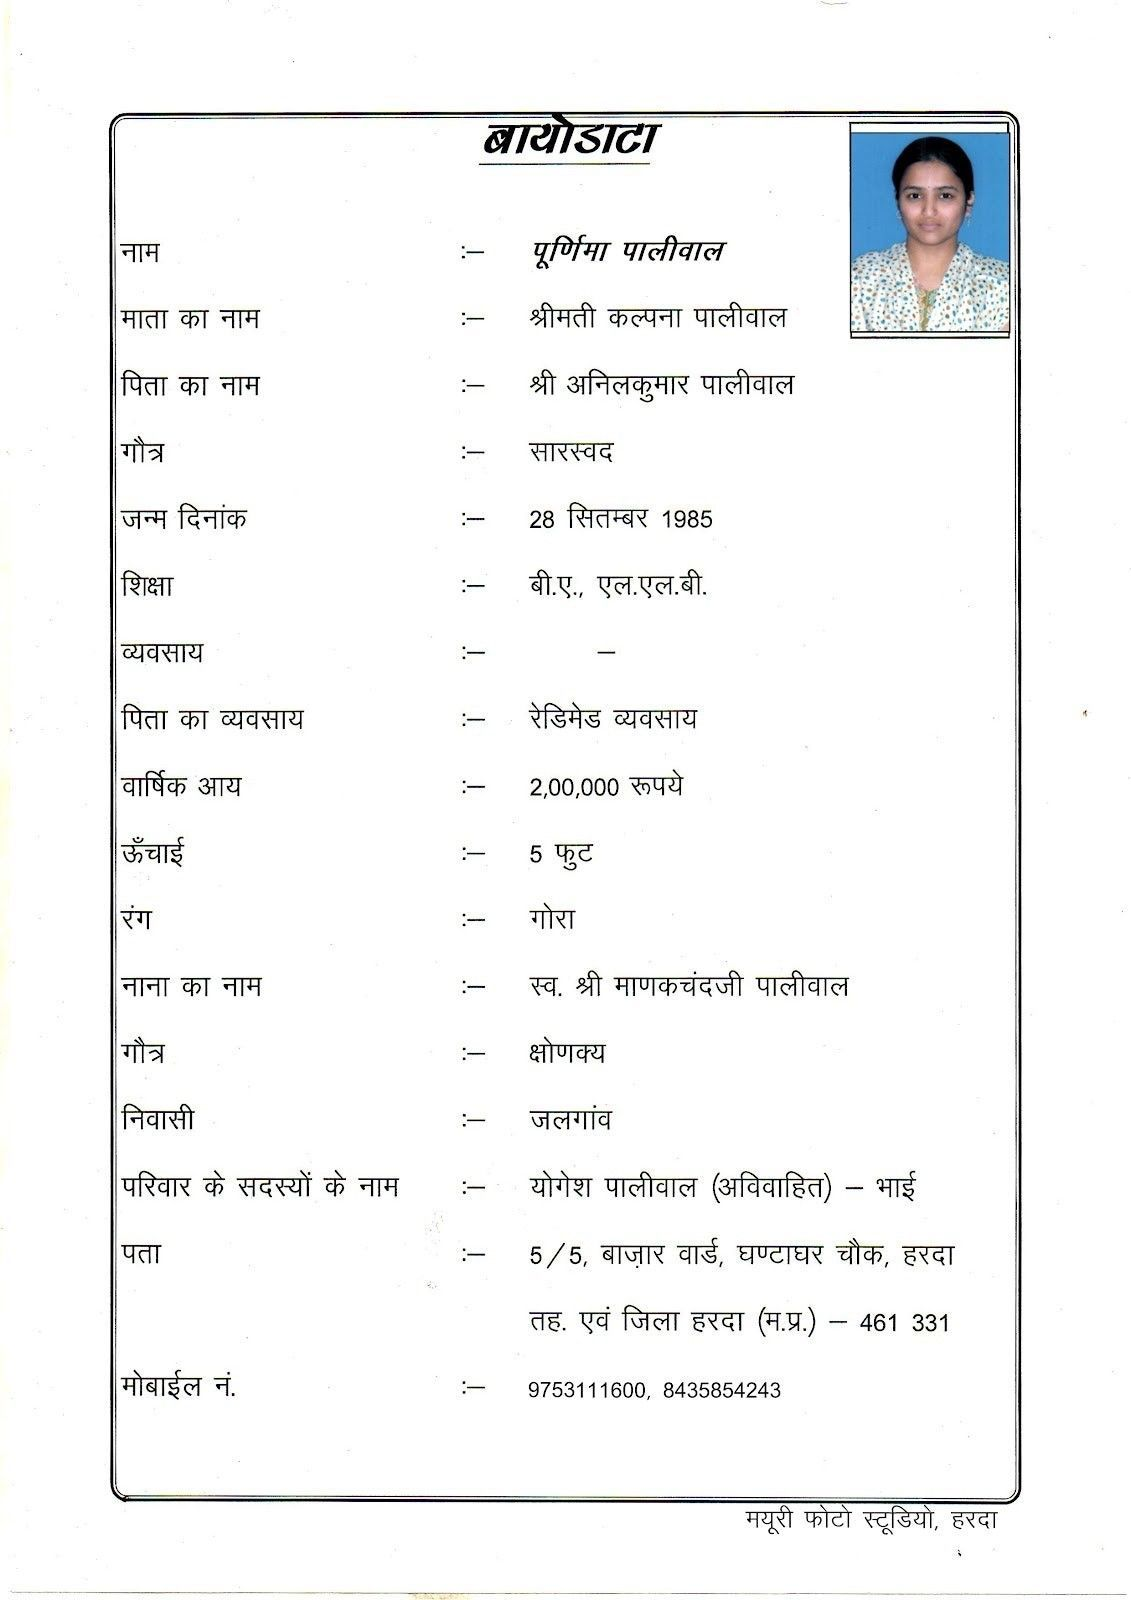 resume format for marriage in marathi download word file ...